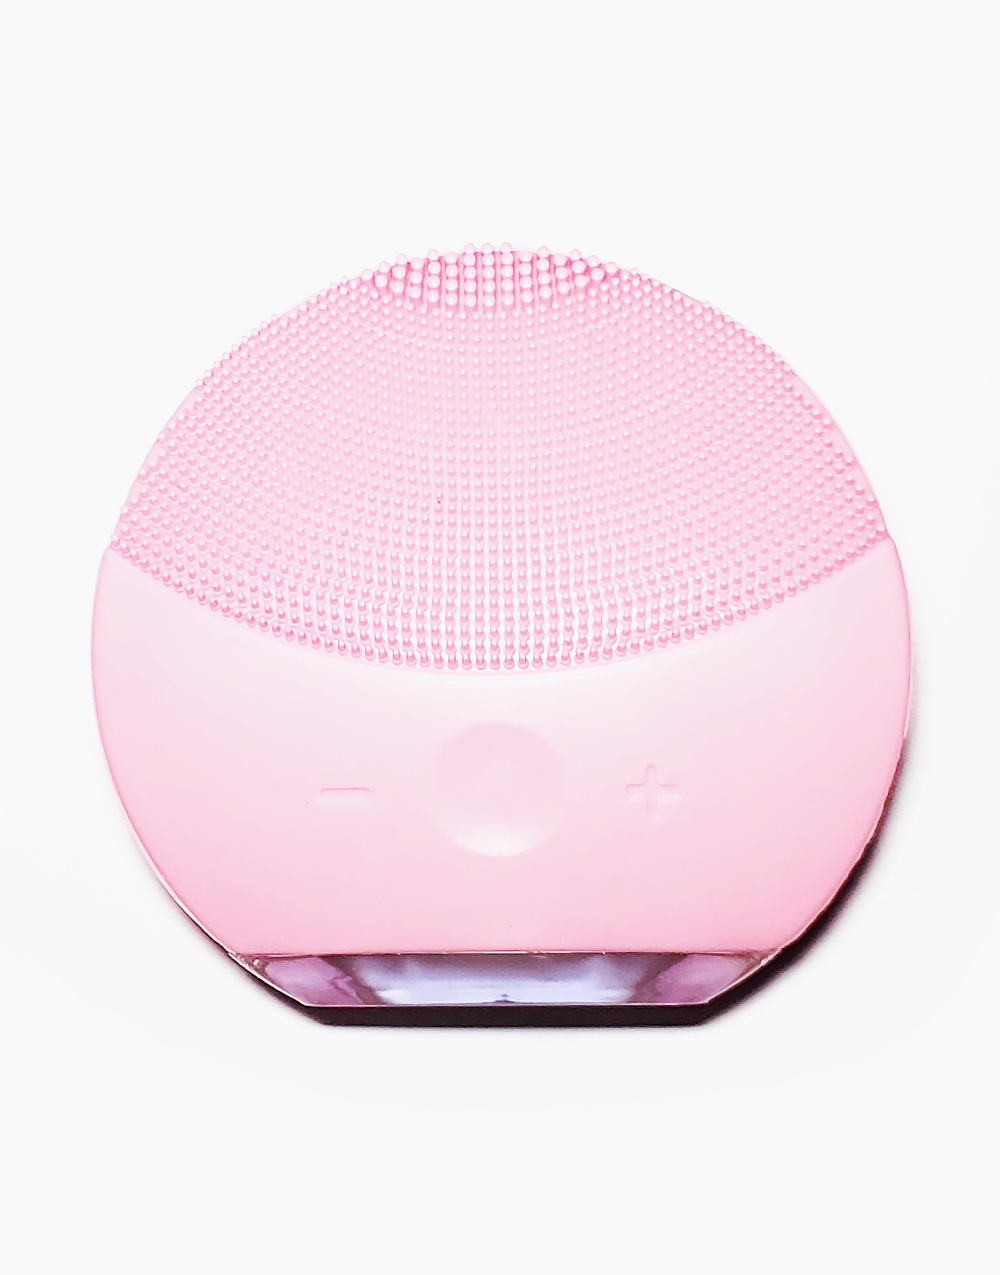 Electronic Facial Cleansing Brush (Rechargeable) by Aphro | Blush Pink